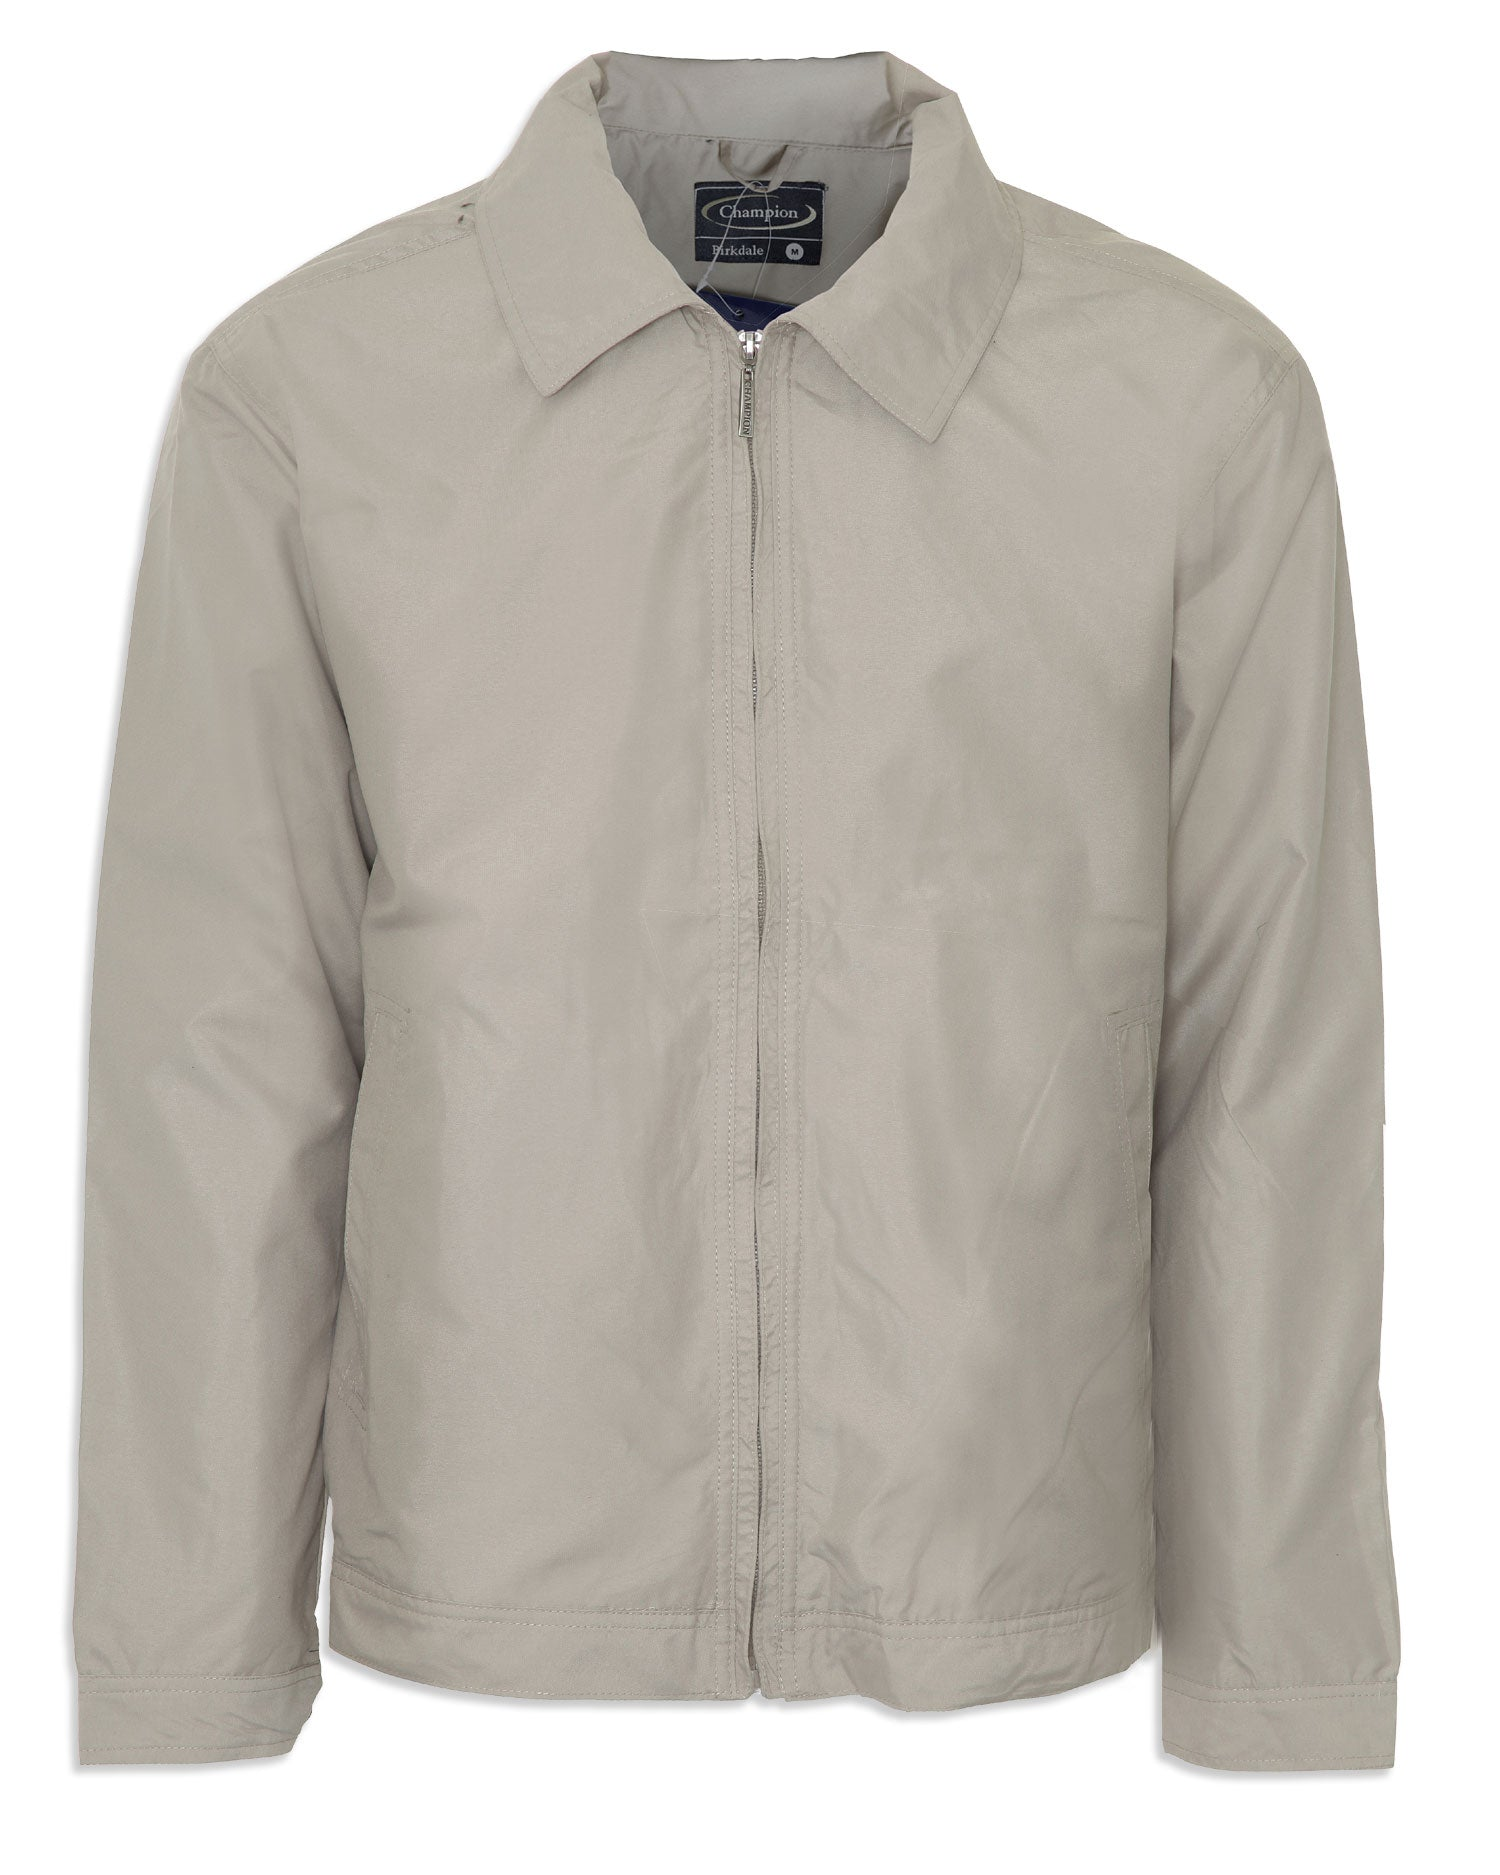 Birkdale jacket in stone colour for summer